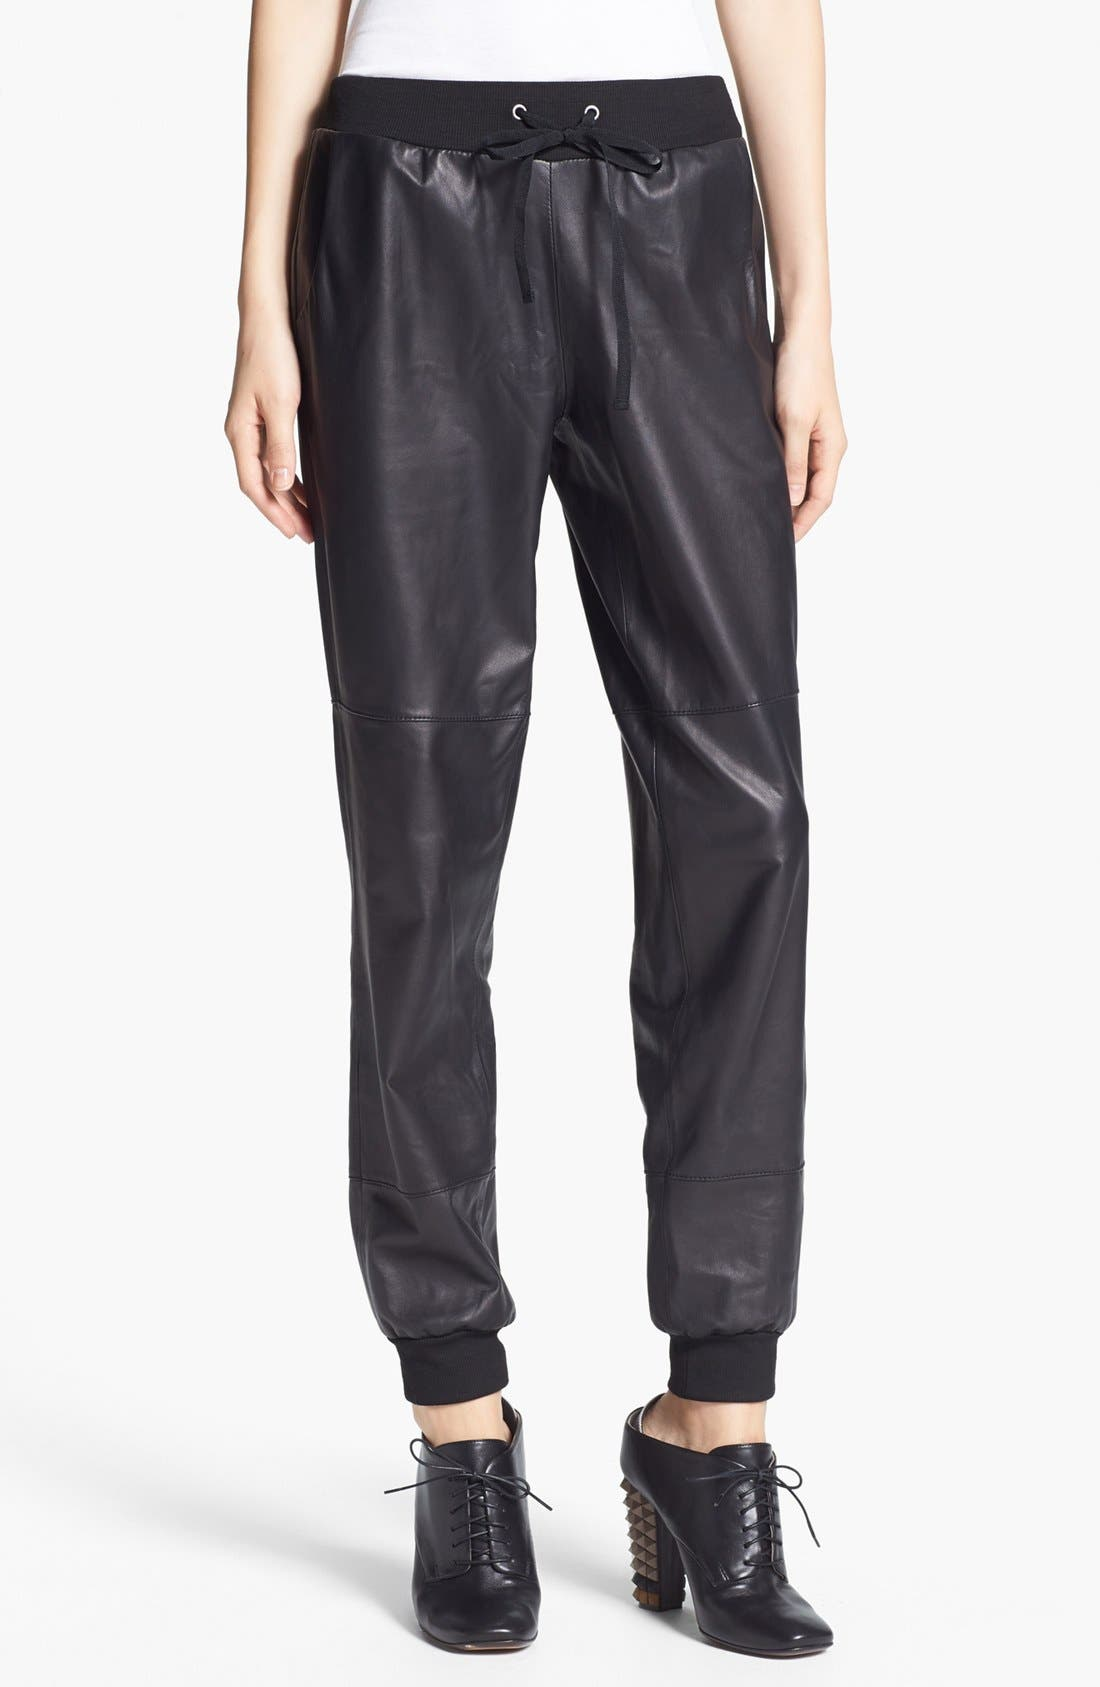 Main Image - Elizabeth and James 'Kacey' Leather Sweatpants